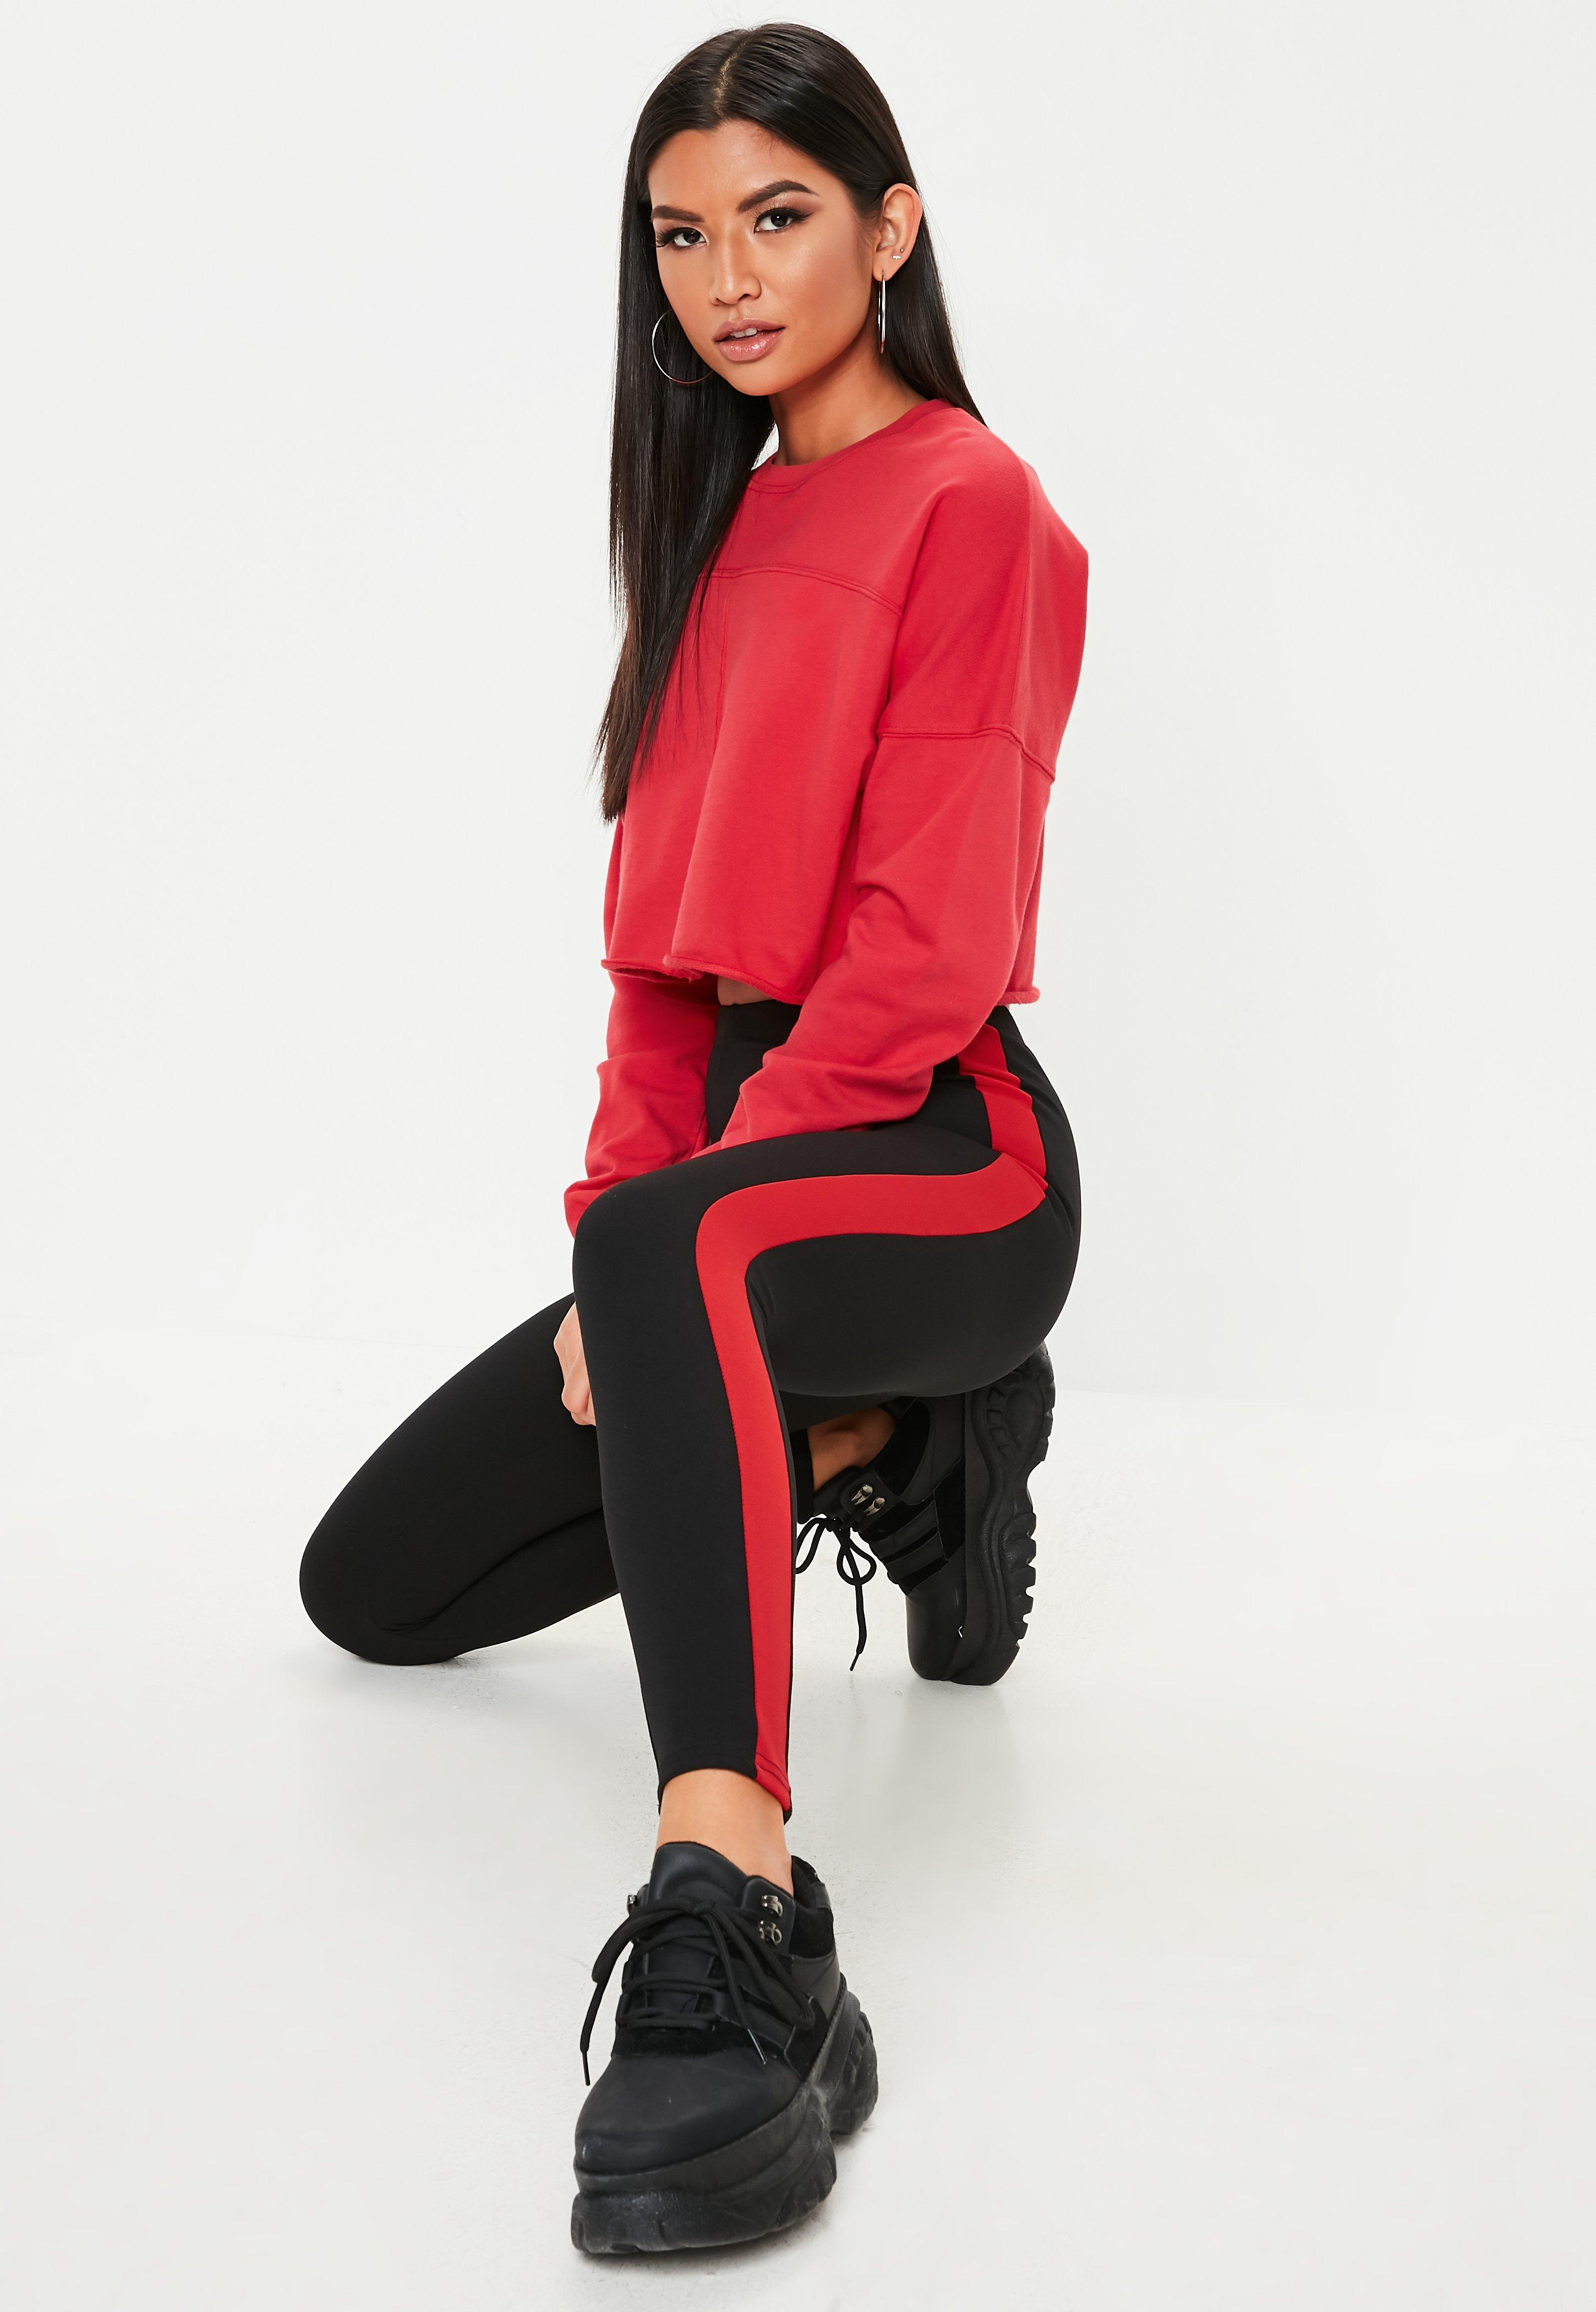 7eb07e2ea69a9 Leggings - Wet Look, Leather & Jersey Leggings | Missguided